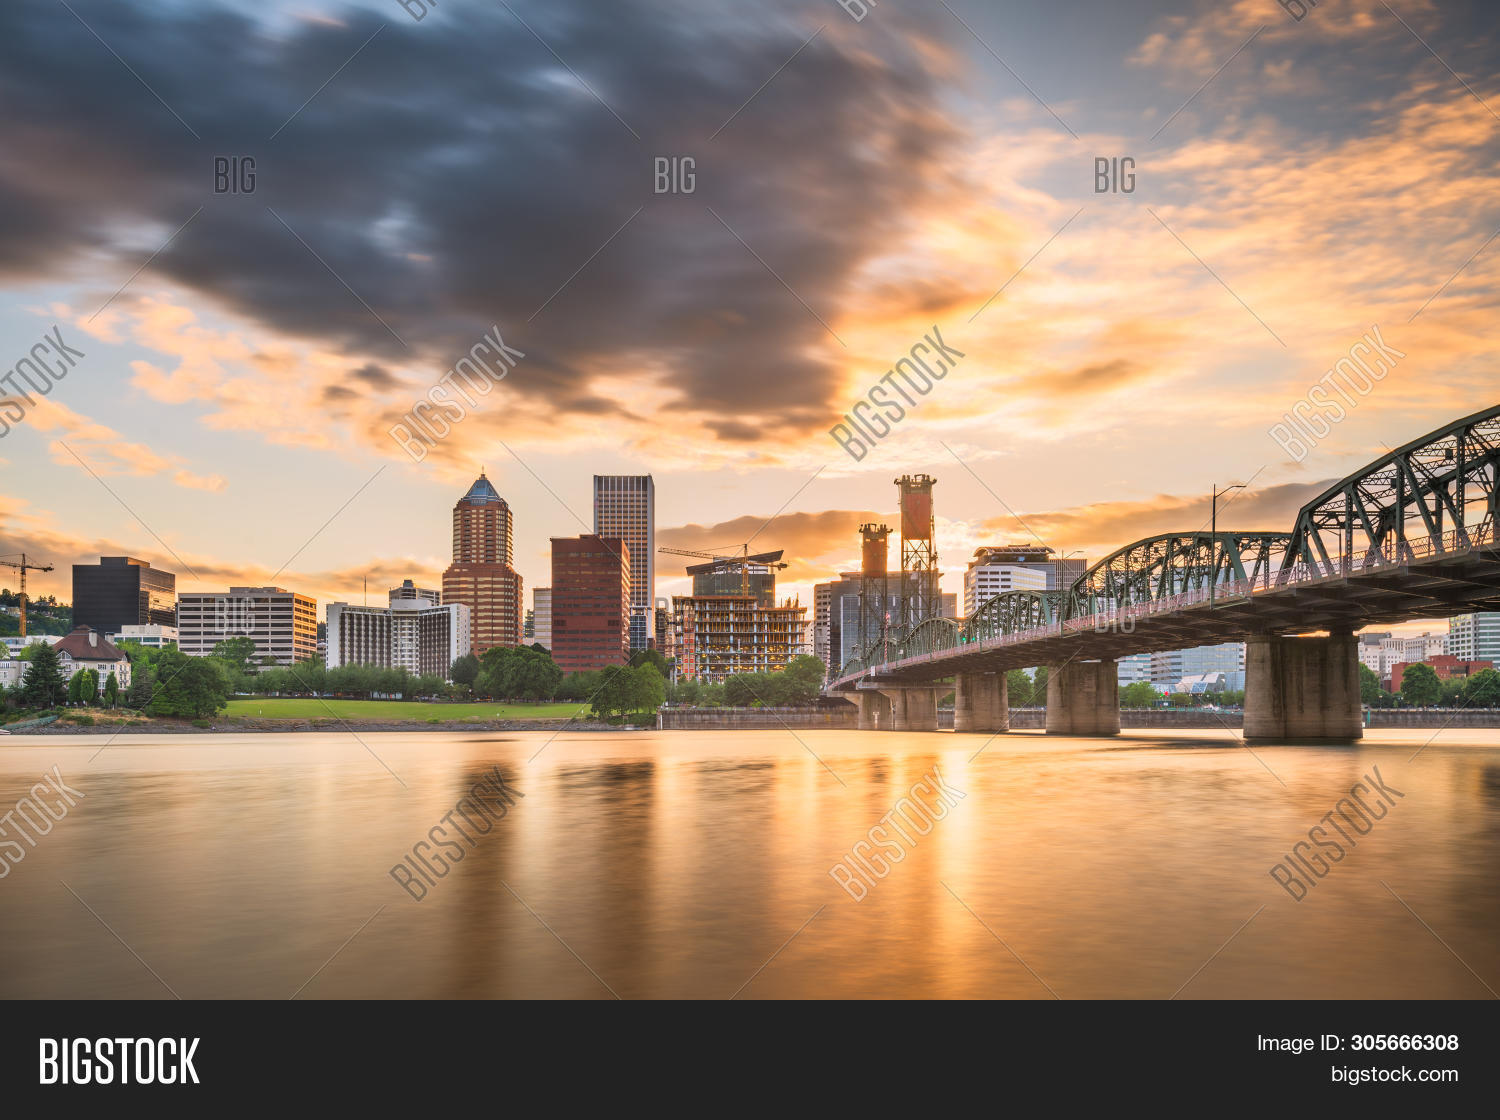 apartments,architecture,blue,bridge,buildings,business,city,cityscape,dawn,district,downtown,dusk,evening,famous,financial,high rises,landmark,landscape,location,modern,night,northwest,offices,oregon,outdoors,pacific,panorama,park,place,portland,reflection,river,scene,scenery,scenic,sky,skyline,skyscrapers,sunrise,sunset,tourism,towers,town,travel,twilight,urban,view,water,willamette